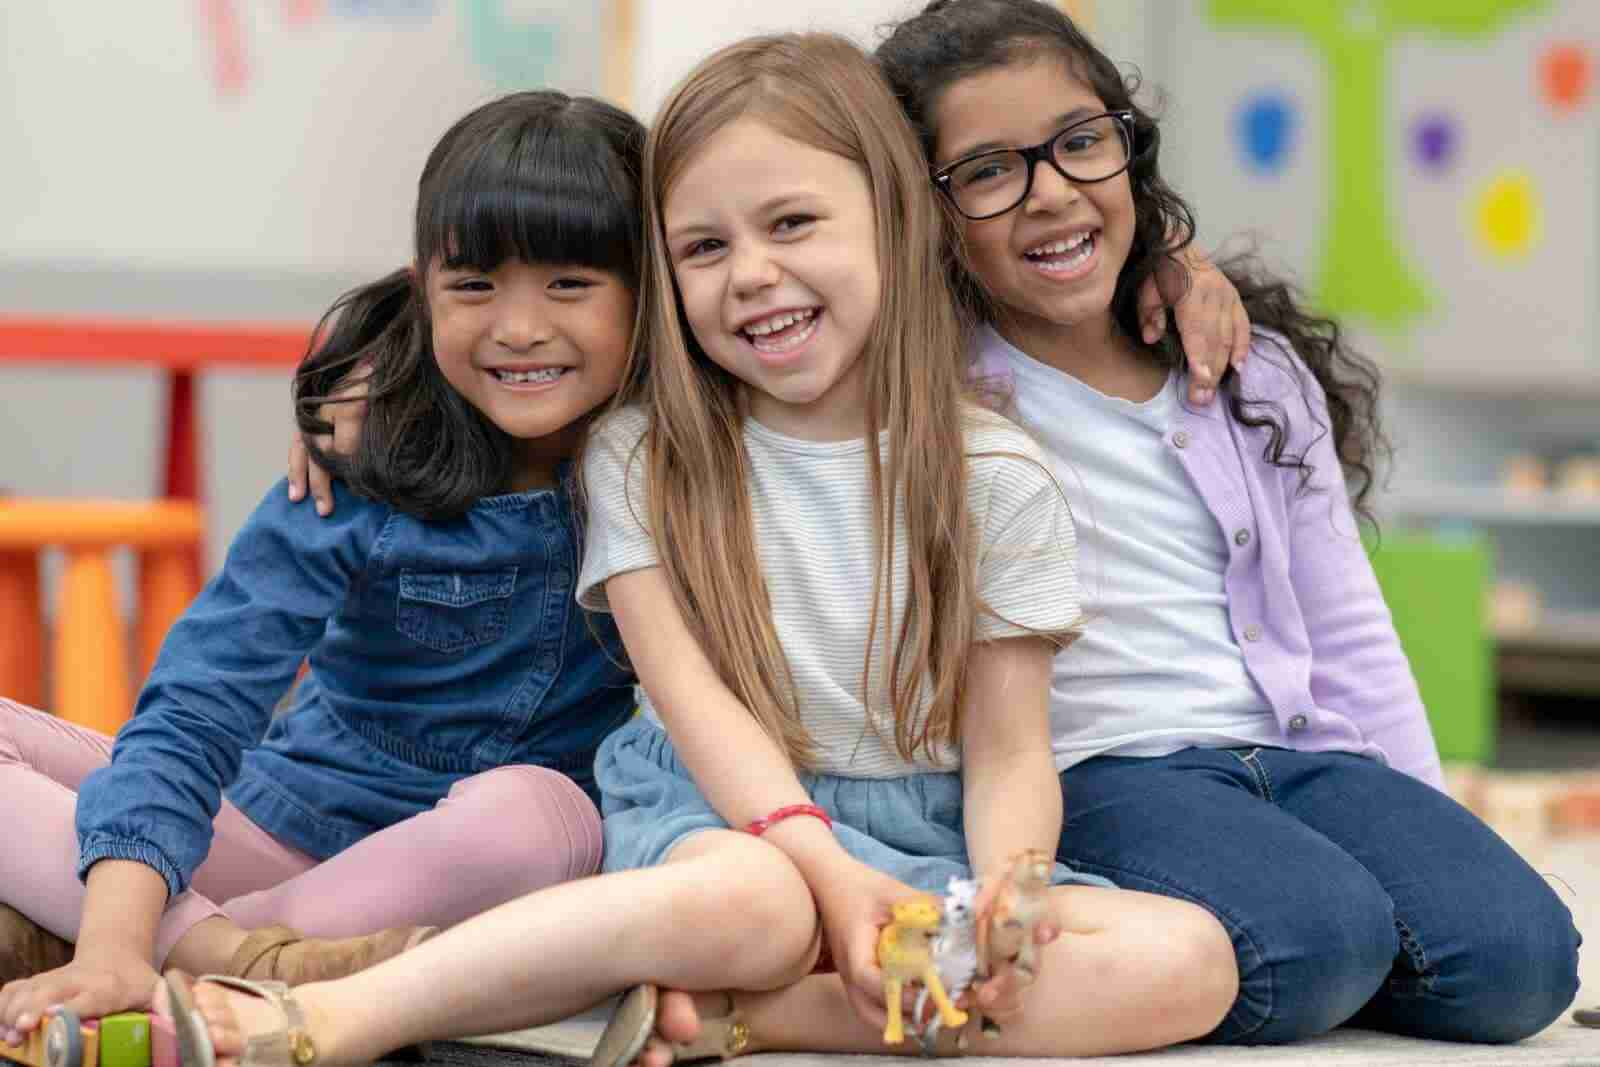 Three children expressing happy feelings. Teaching children about their feelings